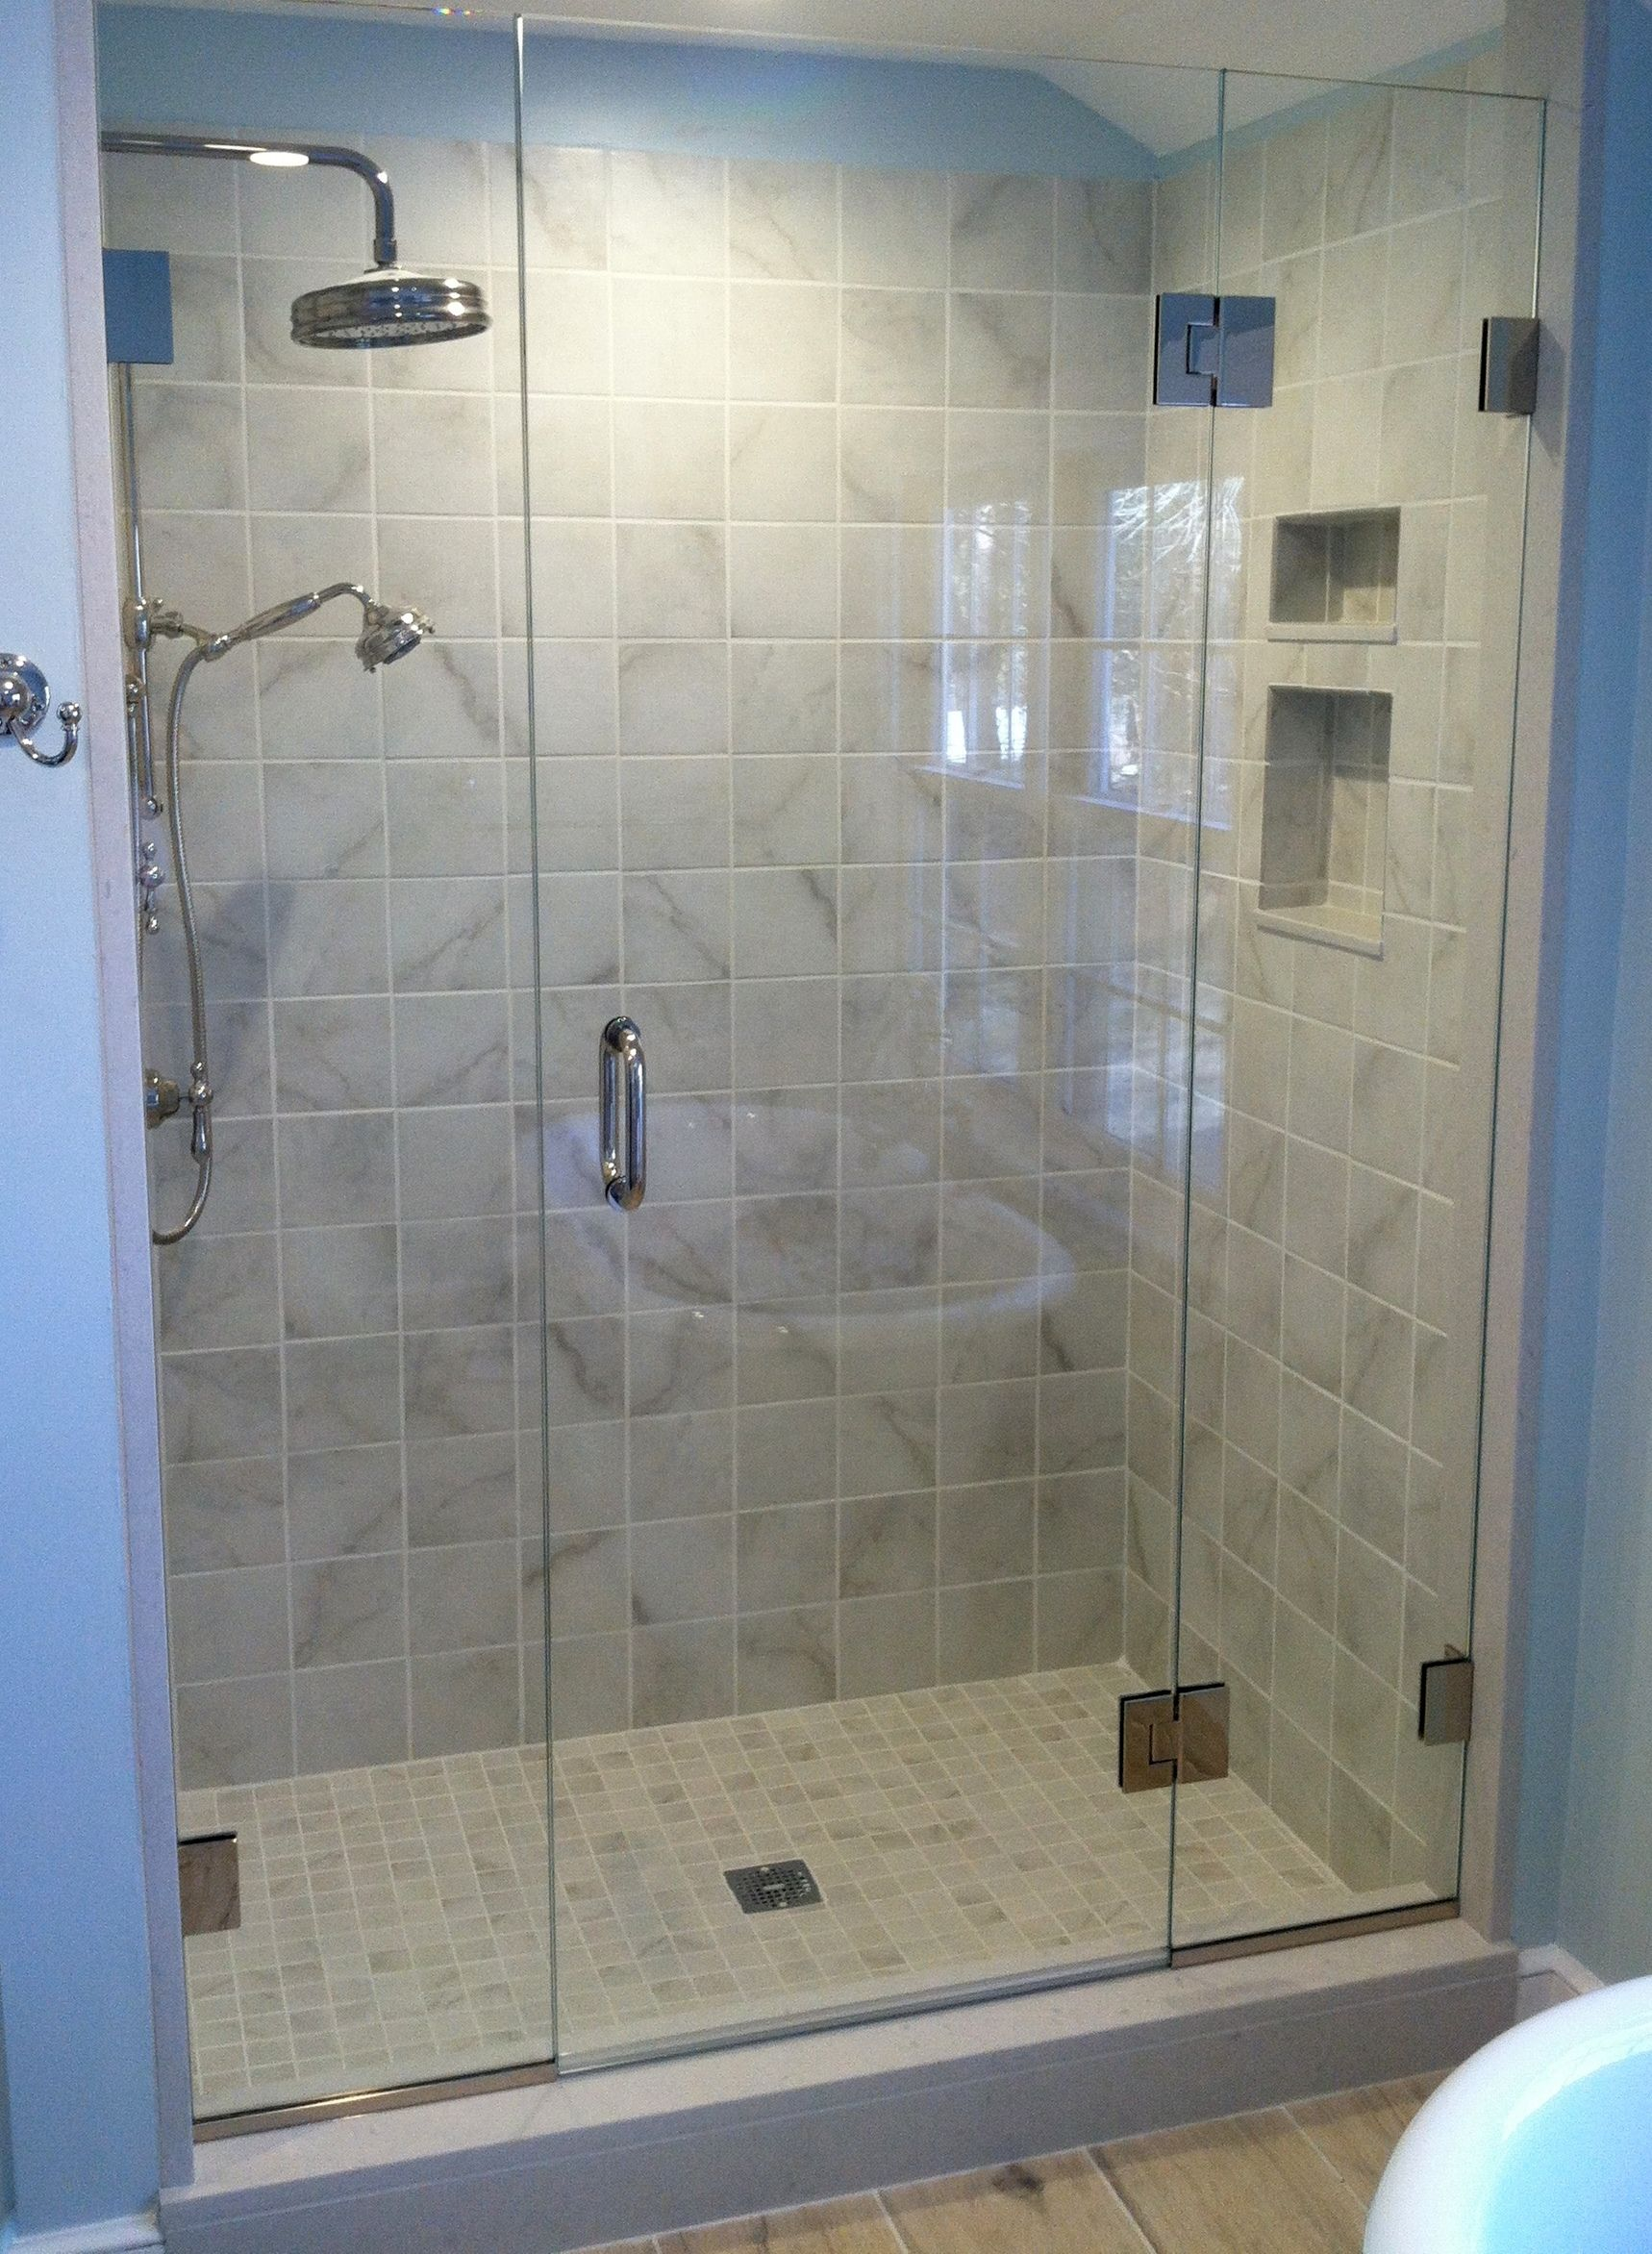 This 5 Foot Opening Is The Same Width As A Standard Bath Tub And